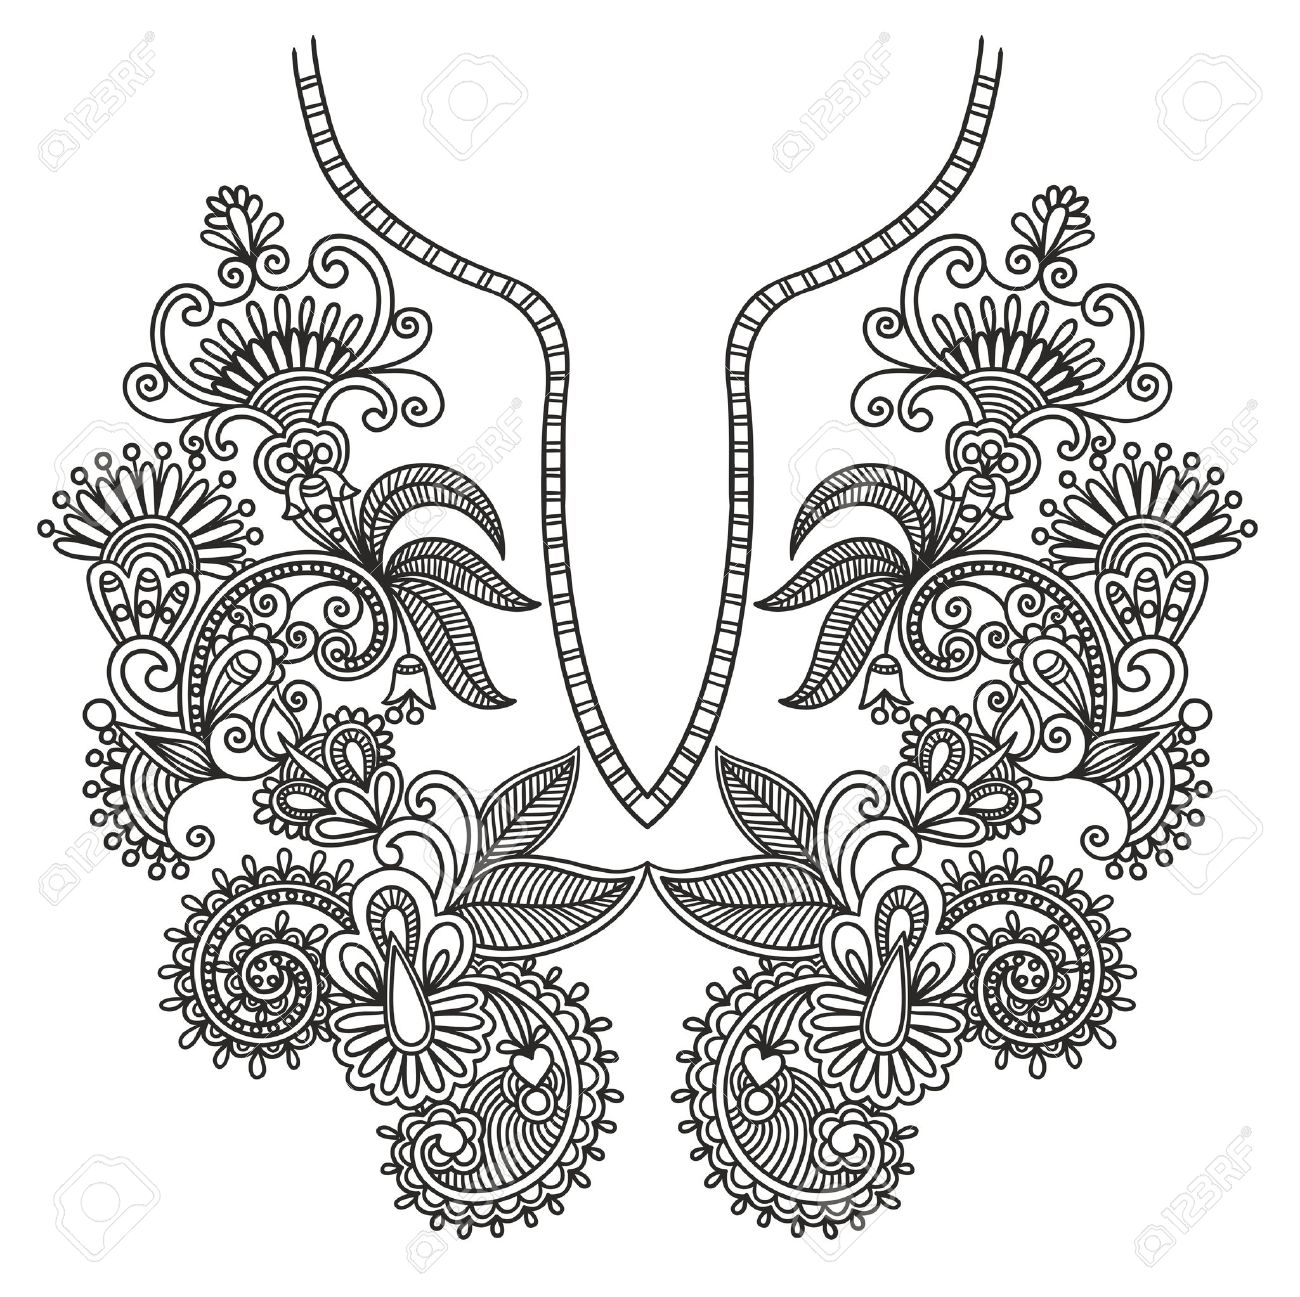 Embroidery pattern clipart clipground 47546 embroidery pattern stock vector illustration and royalty bankloansurffo Gallery